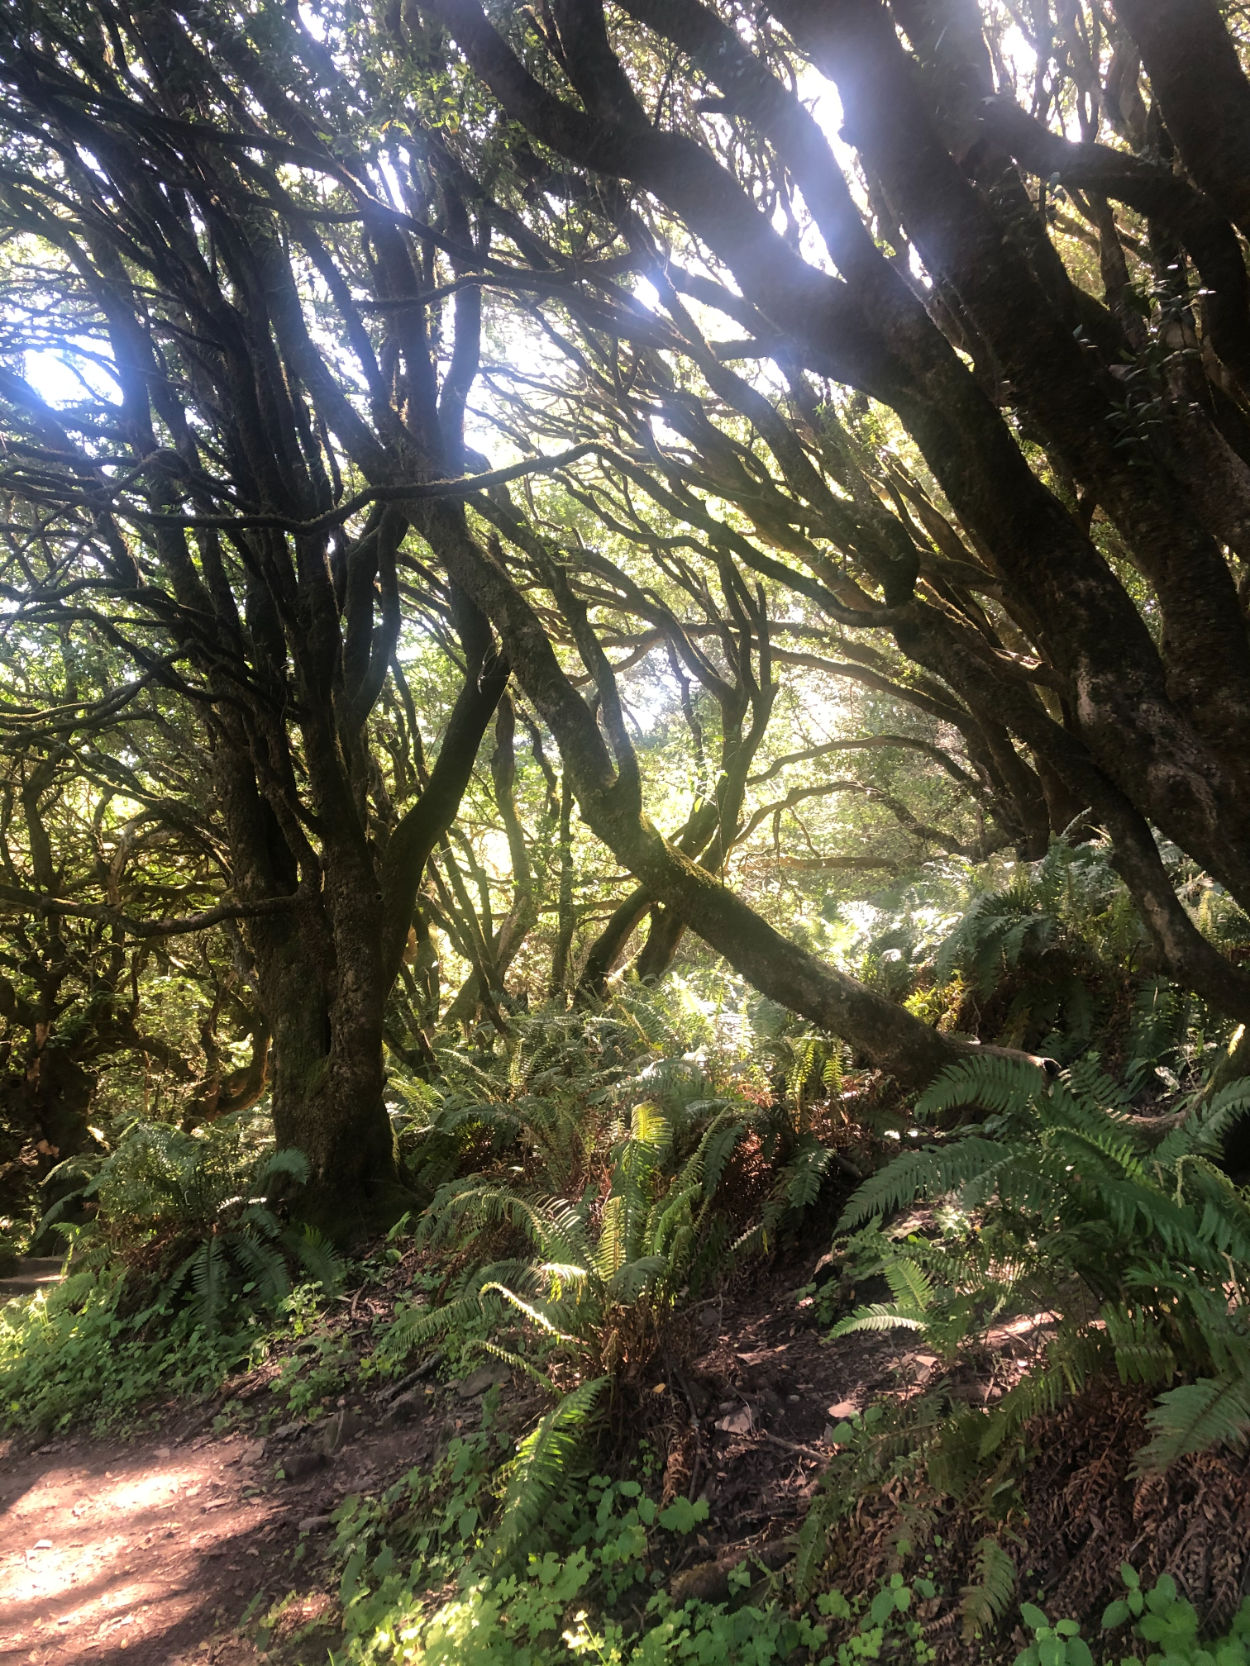 California Bay Laurel trees along Dipsea Trail near Stinson Beach